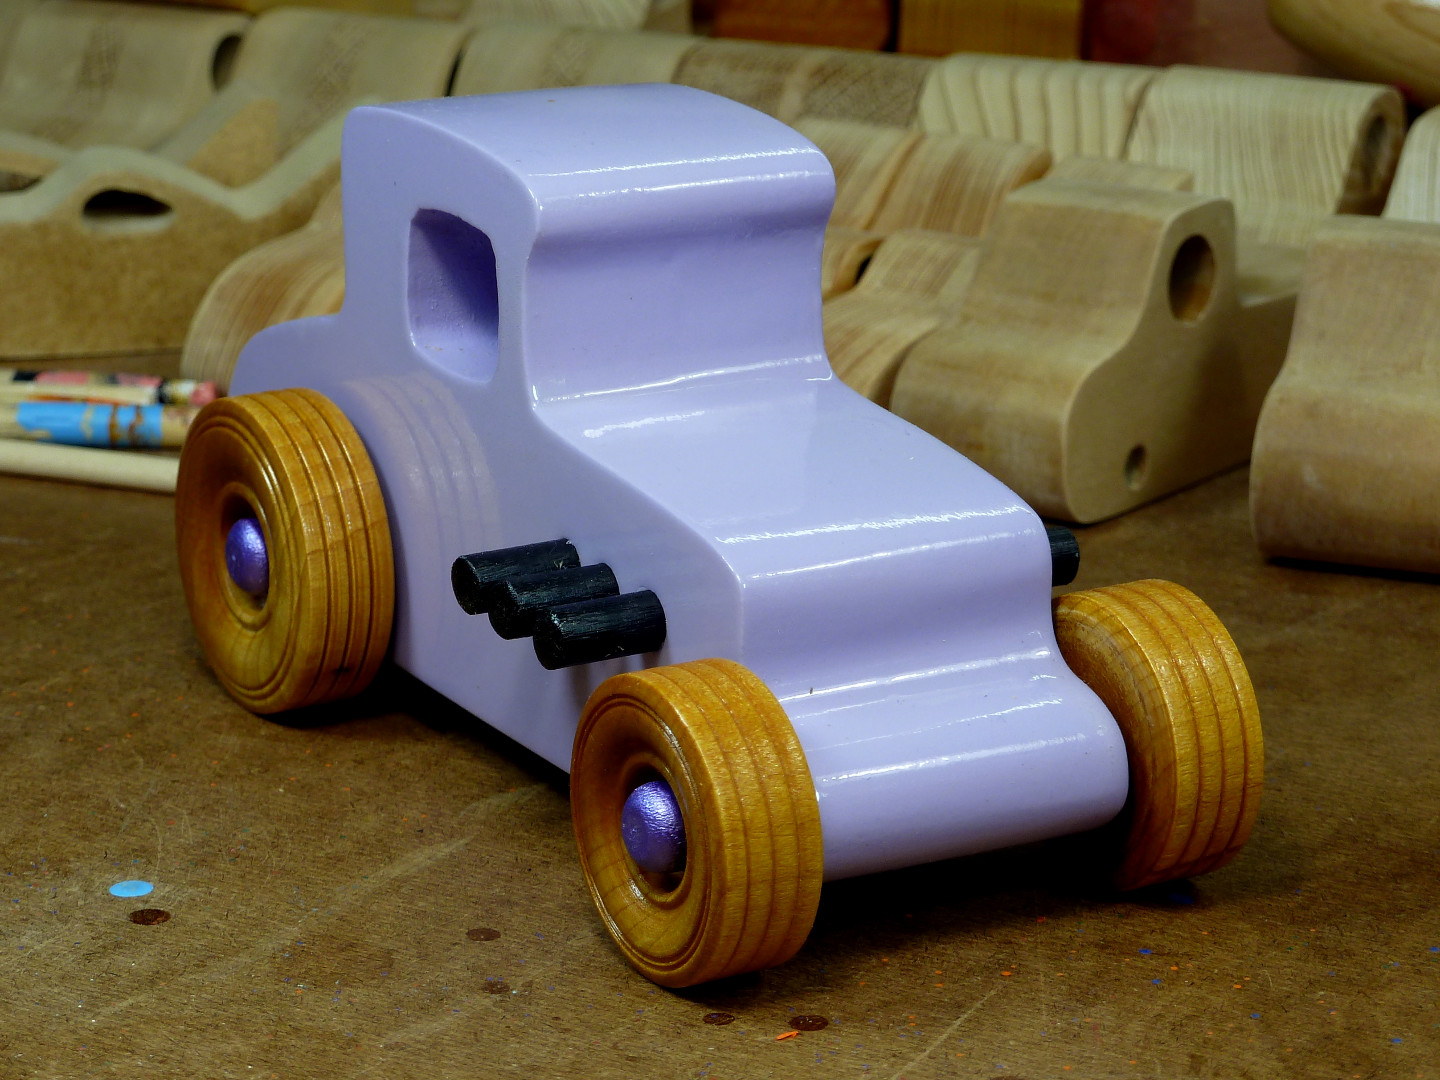 20170522-190053 Wooden Toy Car - Hot Rod Freaky Ford - 27 T Coupe - MDF - Lavender - Amber Shellac - Metallic Purple 01.jpg